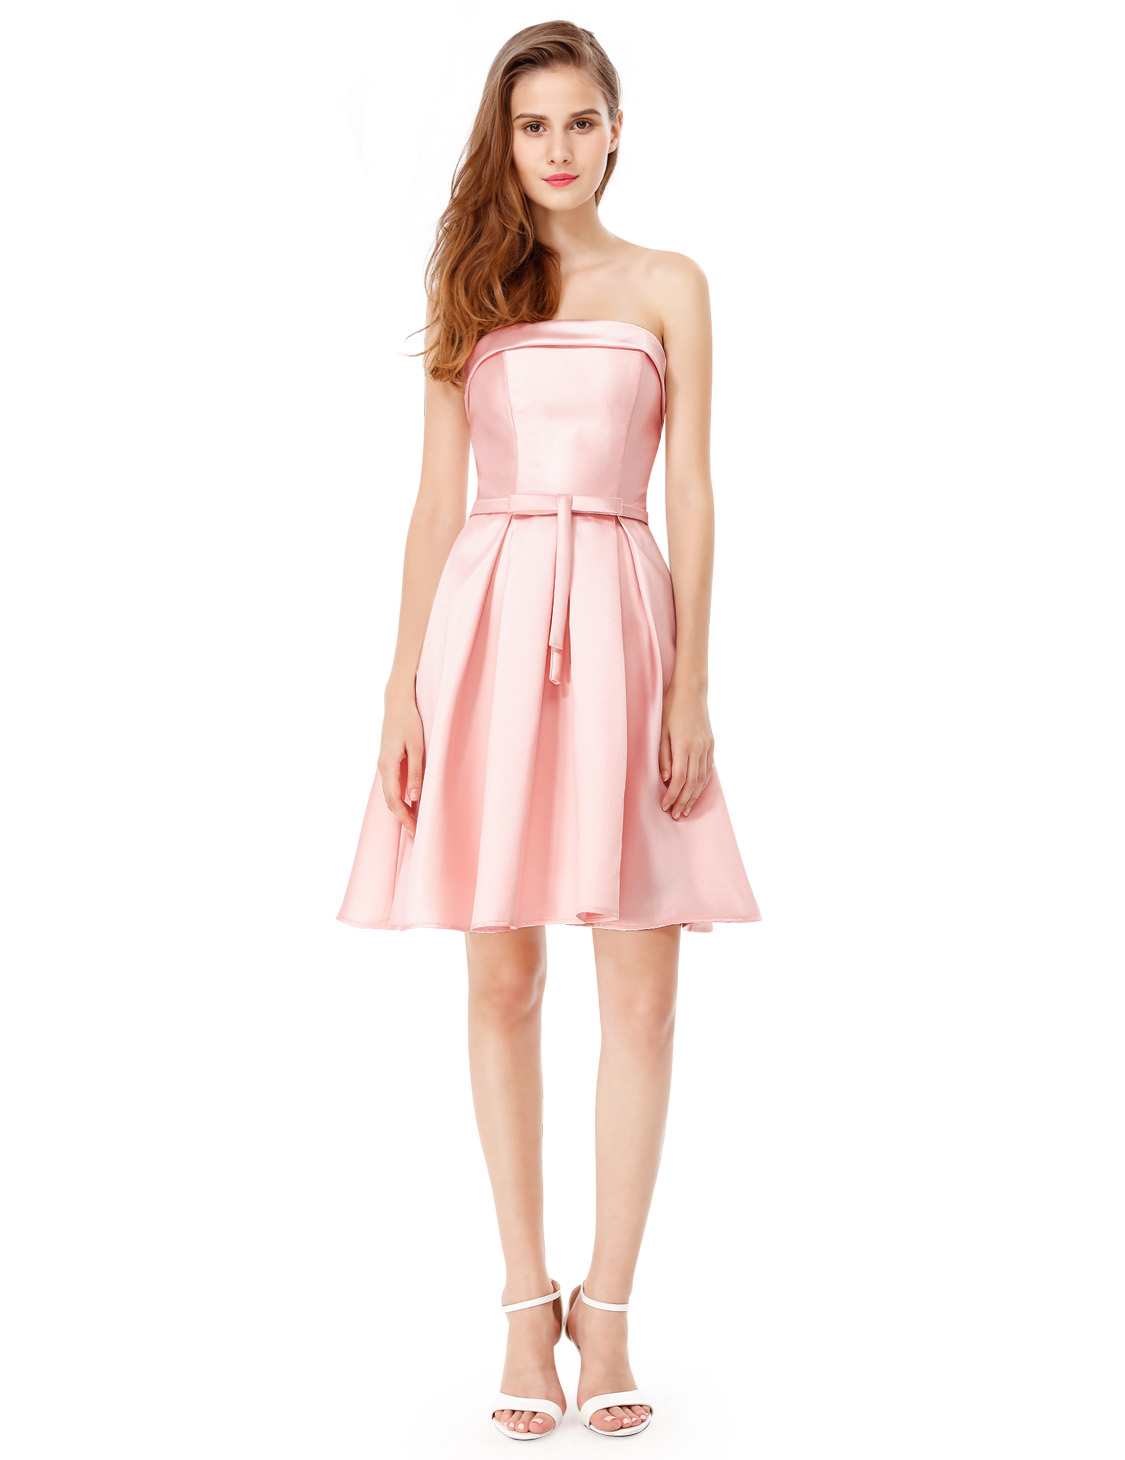 Ever-pretty-Short-Pink-Strapless-Homecoming-Party-Dresses-Cocktail-Skirt-05577